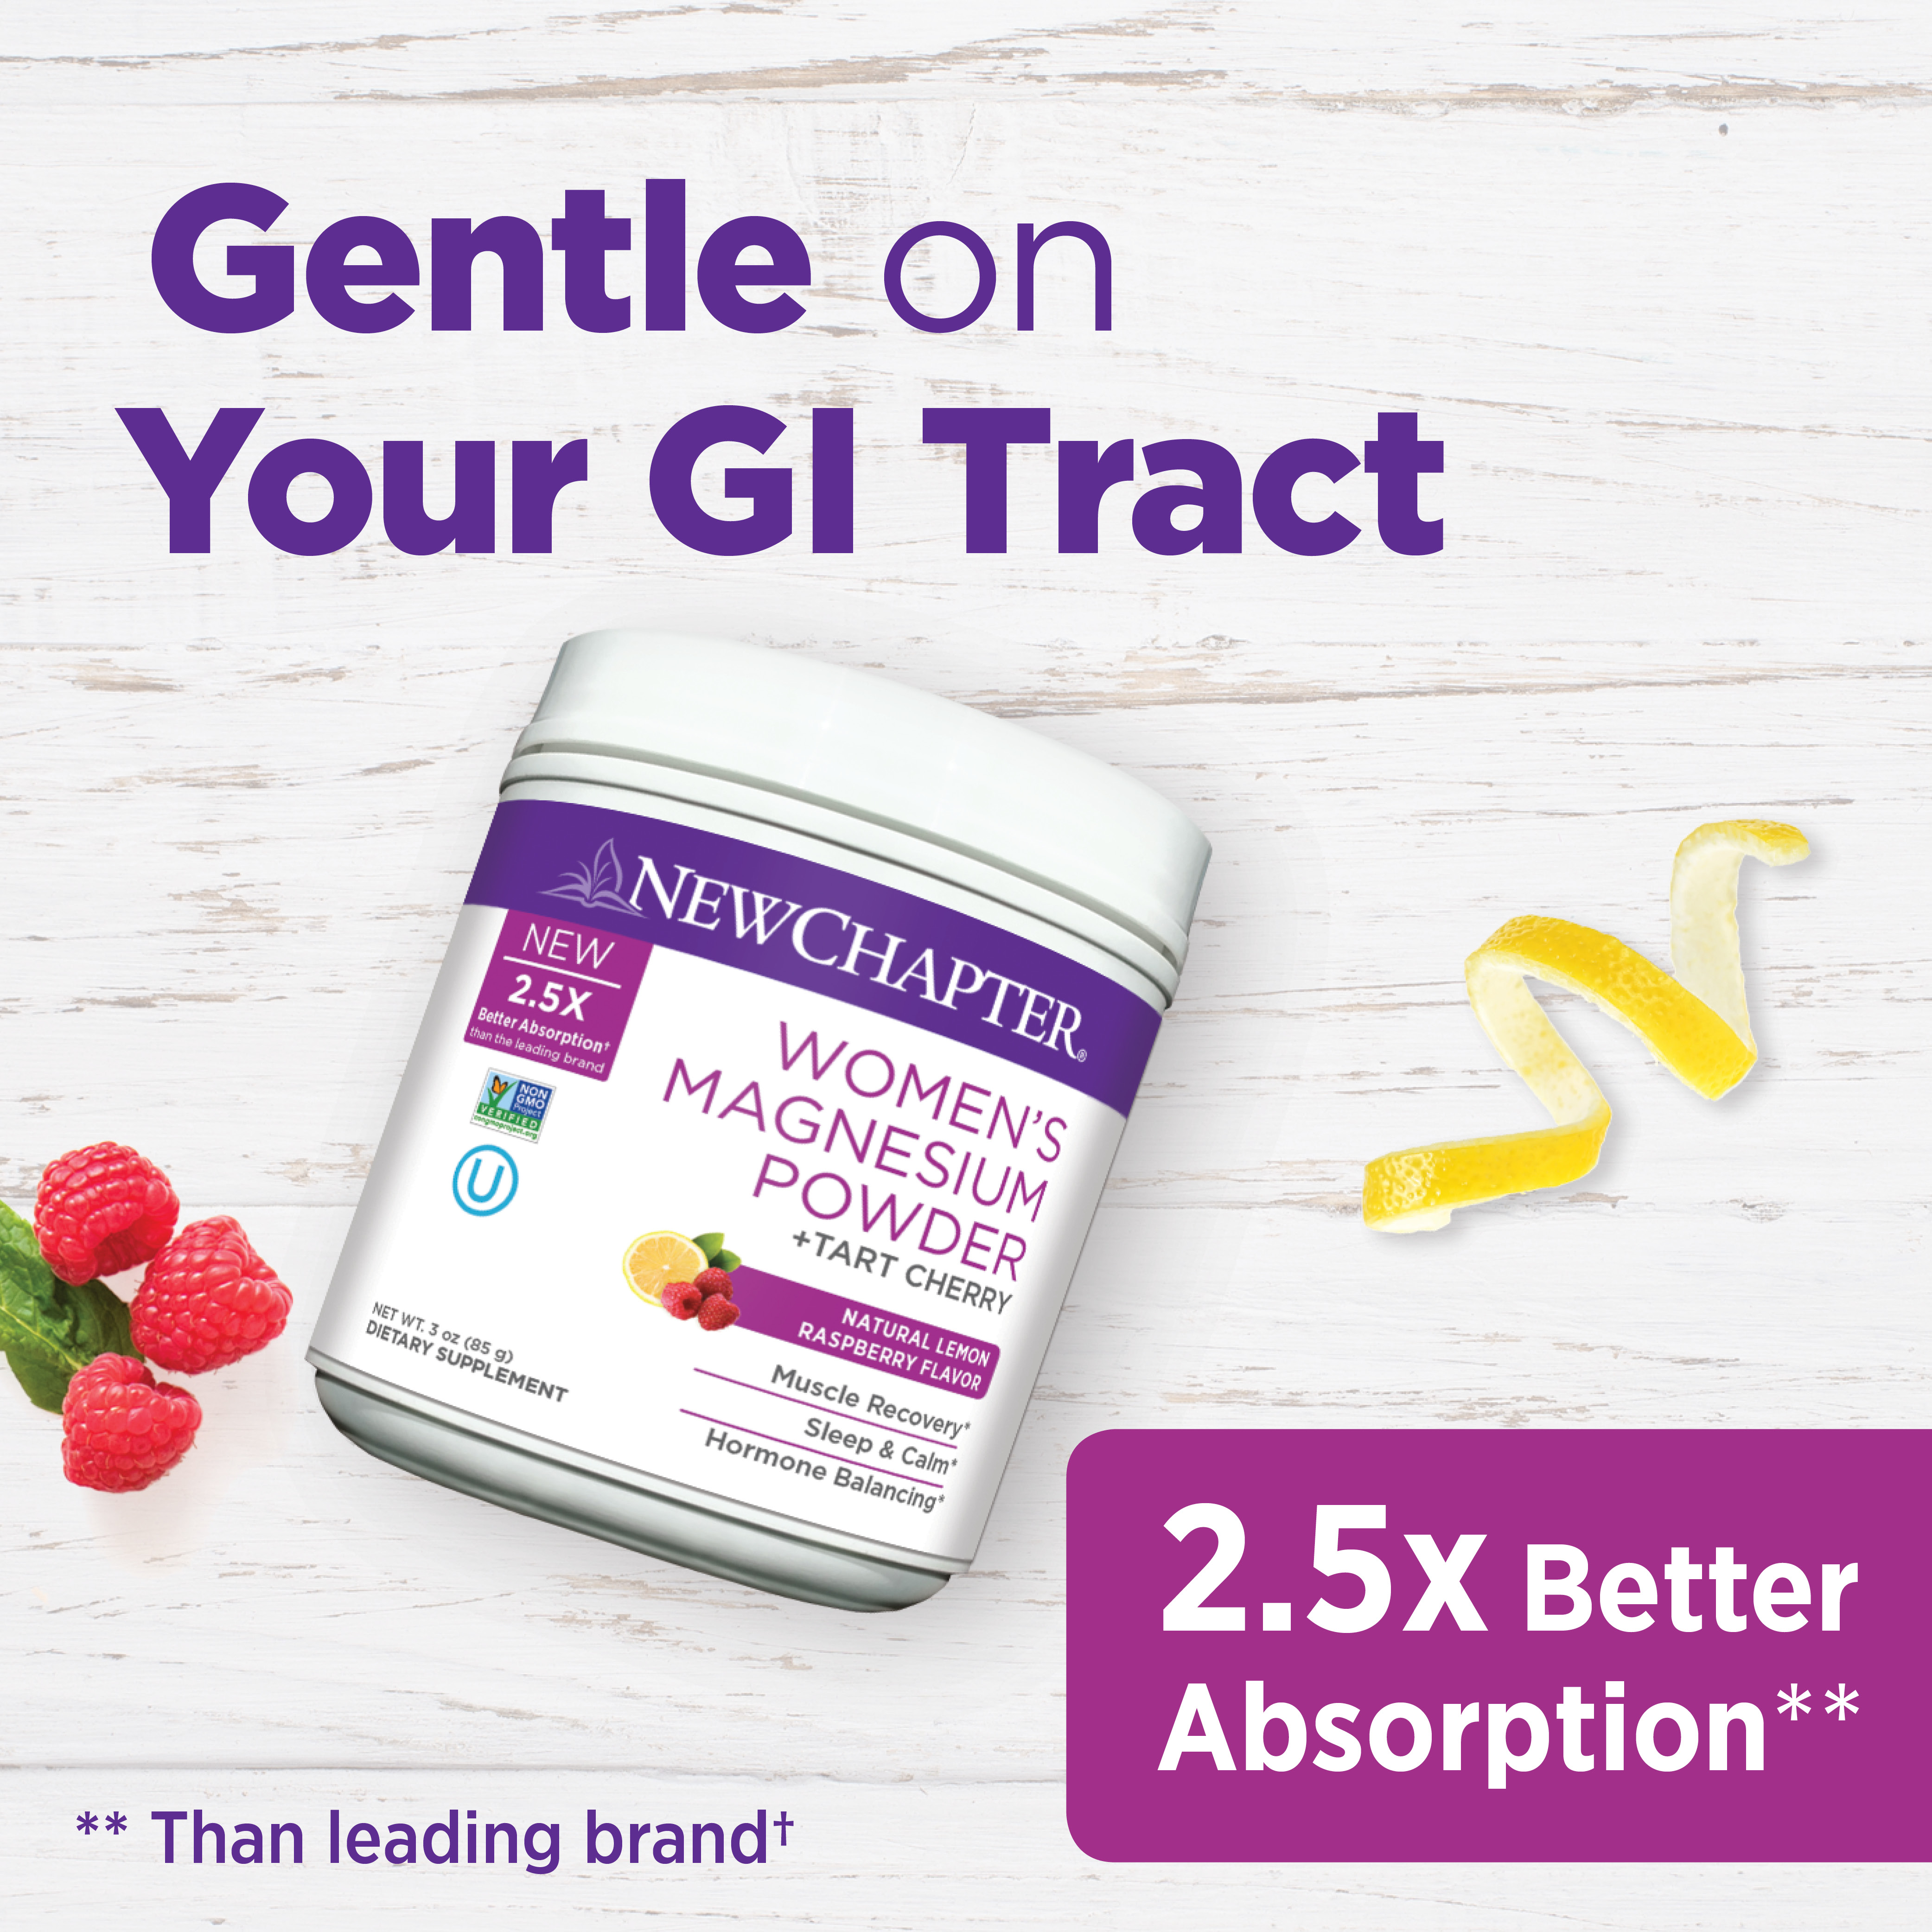 Gentle on Your GI Tract: 2.5x Better Absorption** **Than the leading brand†